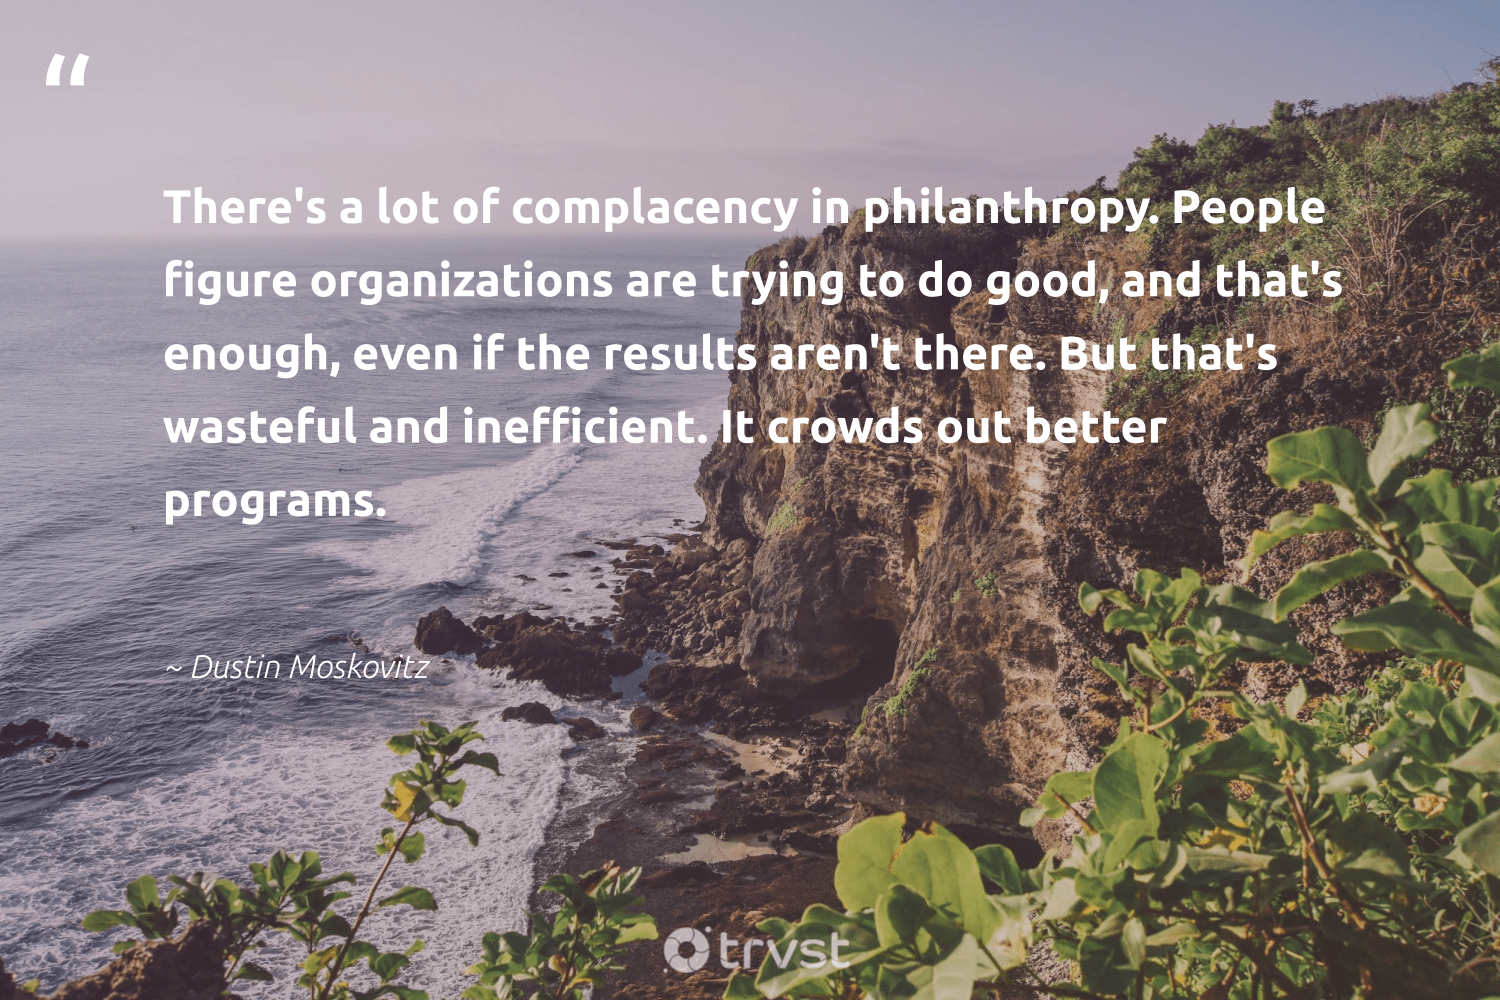 """There's a lot of complacency in philanthropy. People figure organizations are trying to do good, and that's enough, even if the results aren't there. But that's wasteful and inefficient. It crowds out better programs.""  - Dustin Moskovitz #trvst #quotes #philanthropy #dogood #results #philanthropic #changemakers #giveforthefuture #planetearthfirst #togetherwecan #itscooltobekind #beinspired"